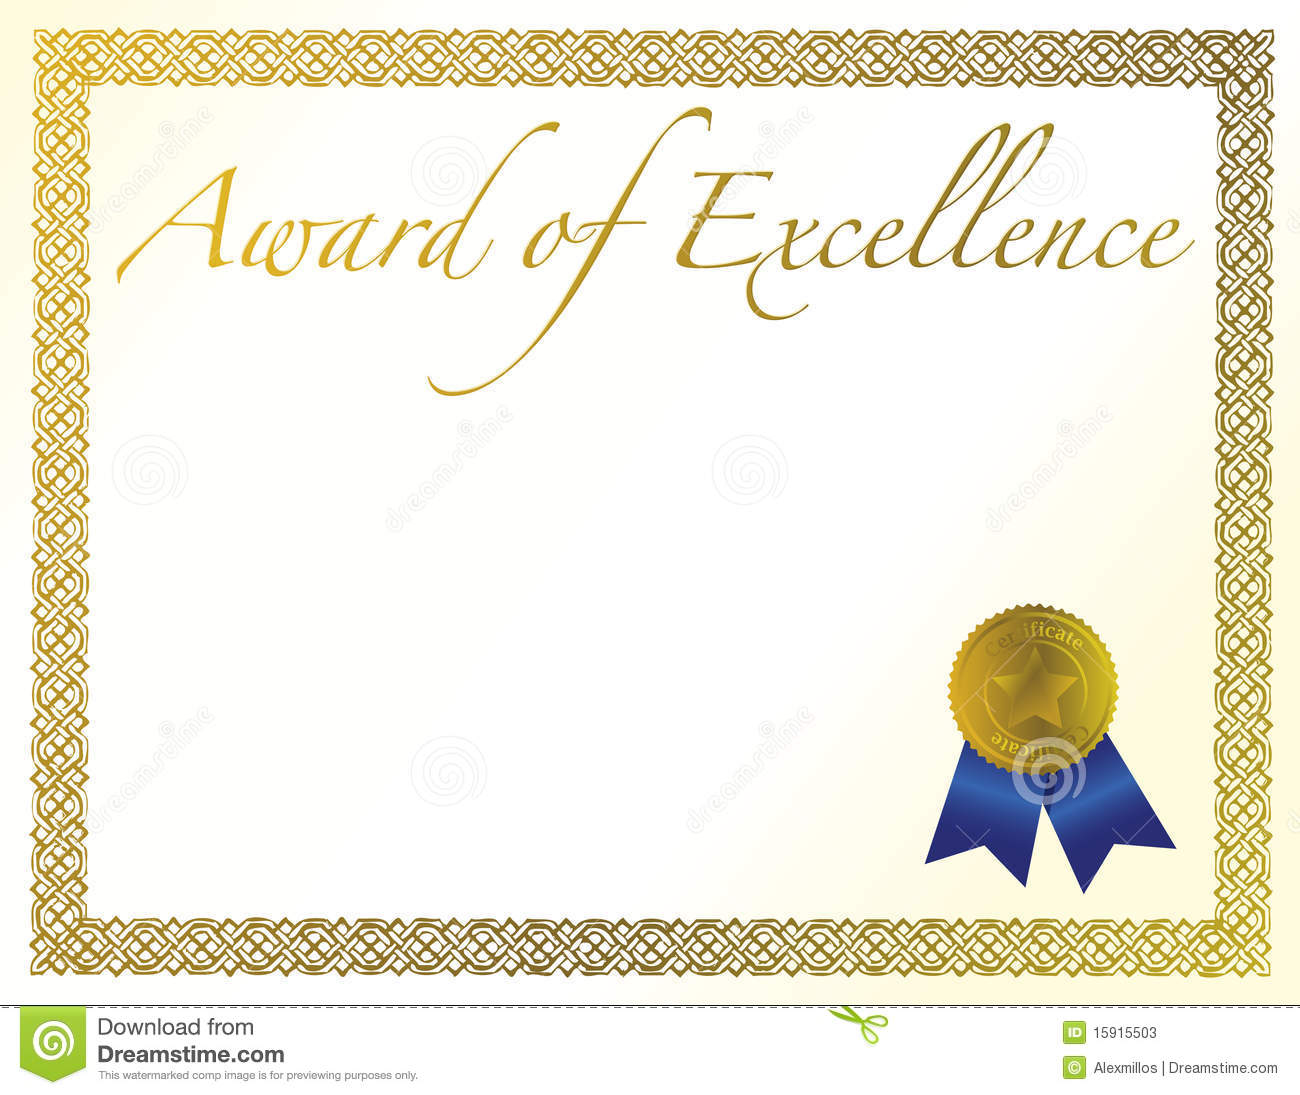 Award of excellence certificate template insrenterprises award of excellence certificate template xflitez Image collections